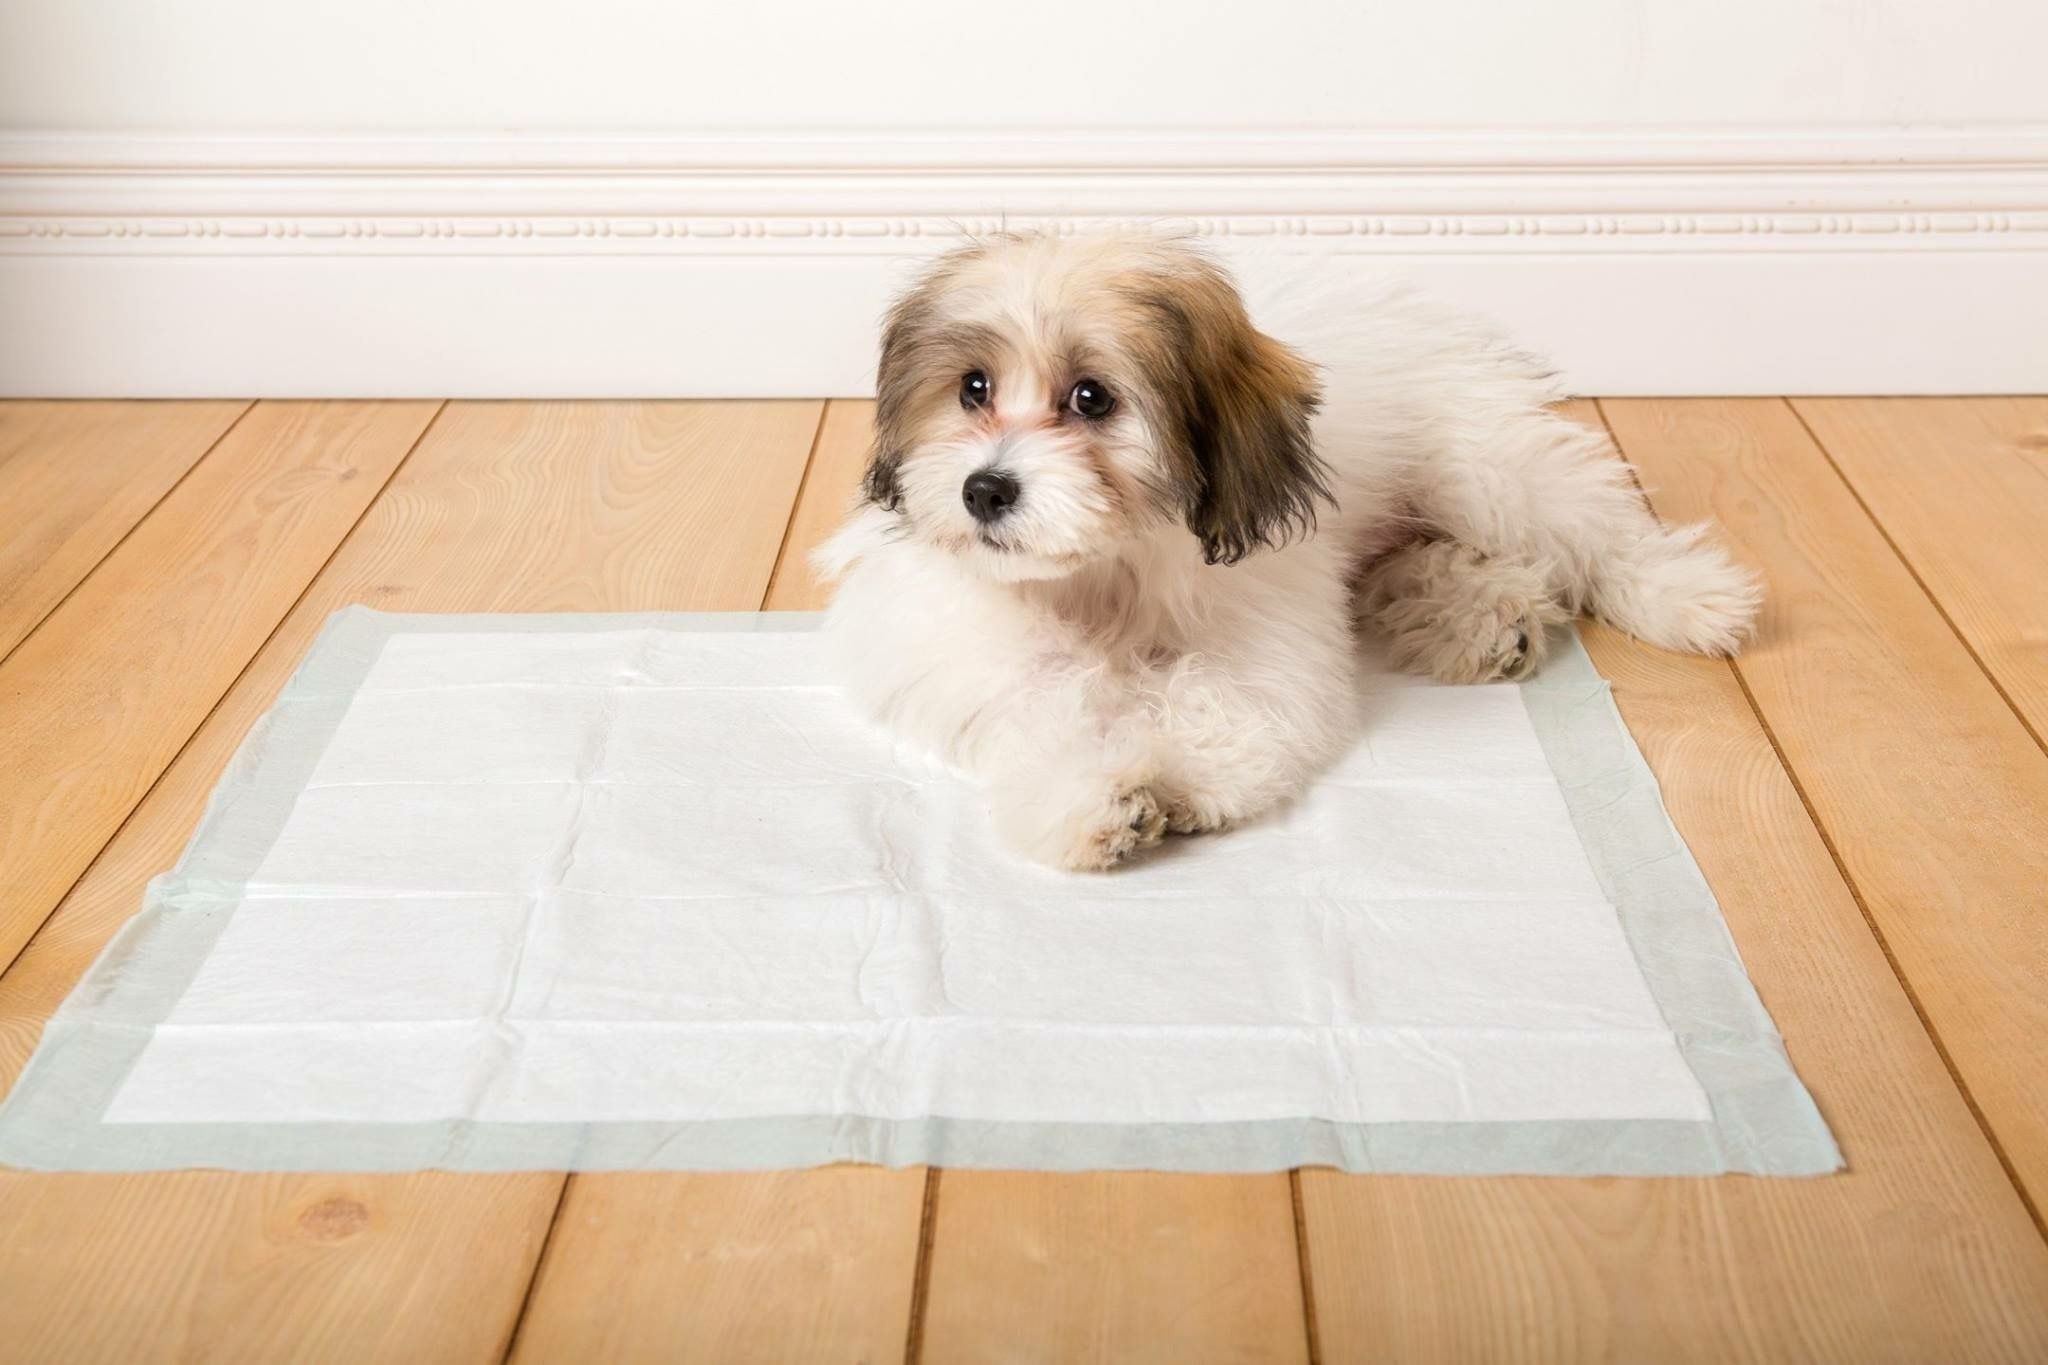 The Patented Flash Dry Technology And Plastic Backing And Border On Each Hartz Home Protection Dog Pad Protects All Floor Types From Lea Dog Pads Dogs Your Pet